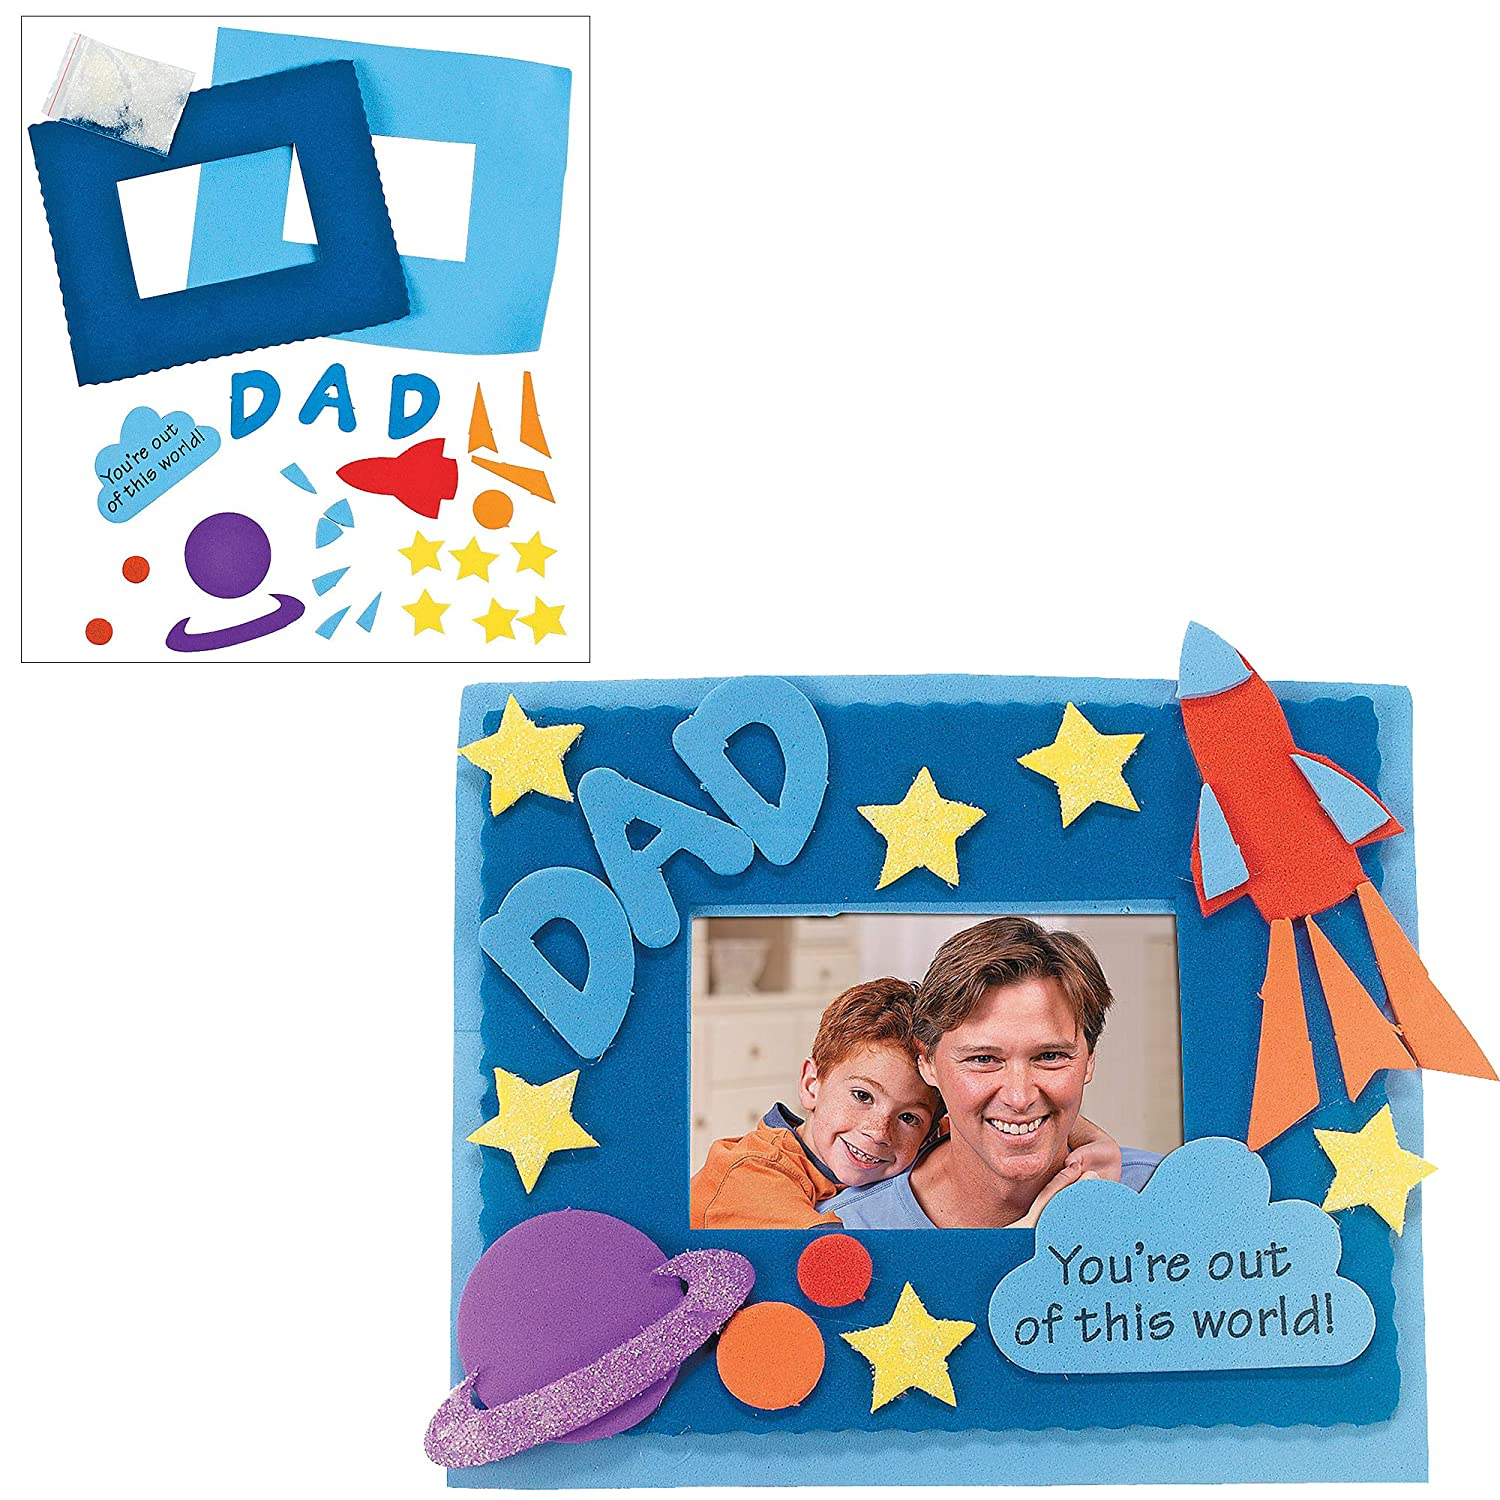 """Boy /& Girls Gift Pirate Pop-Up Craft Dads Picture Photo Frame Magnet Kit and Color Your Own /""""All About My Dad/"""" Wheels Super Dad Sticker Cards DIY /""""Dad/"""" Keychains Fathers Day DIY Craft Kit"""